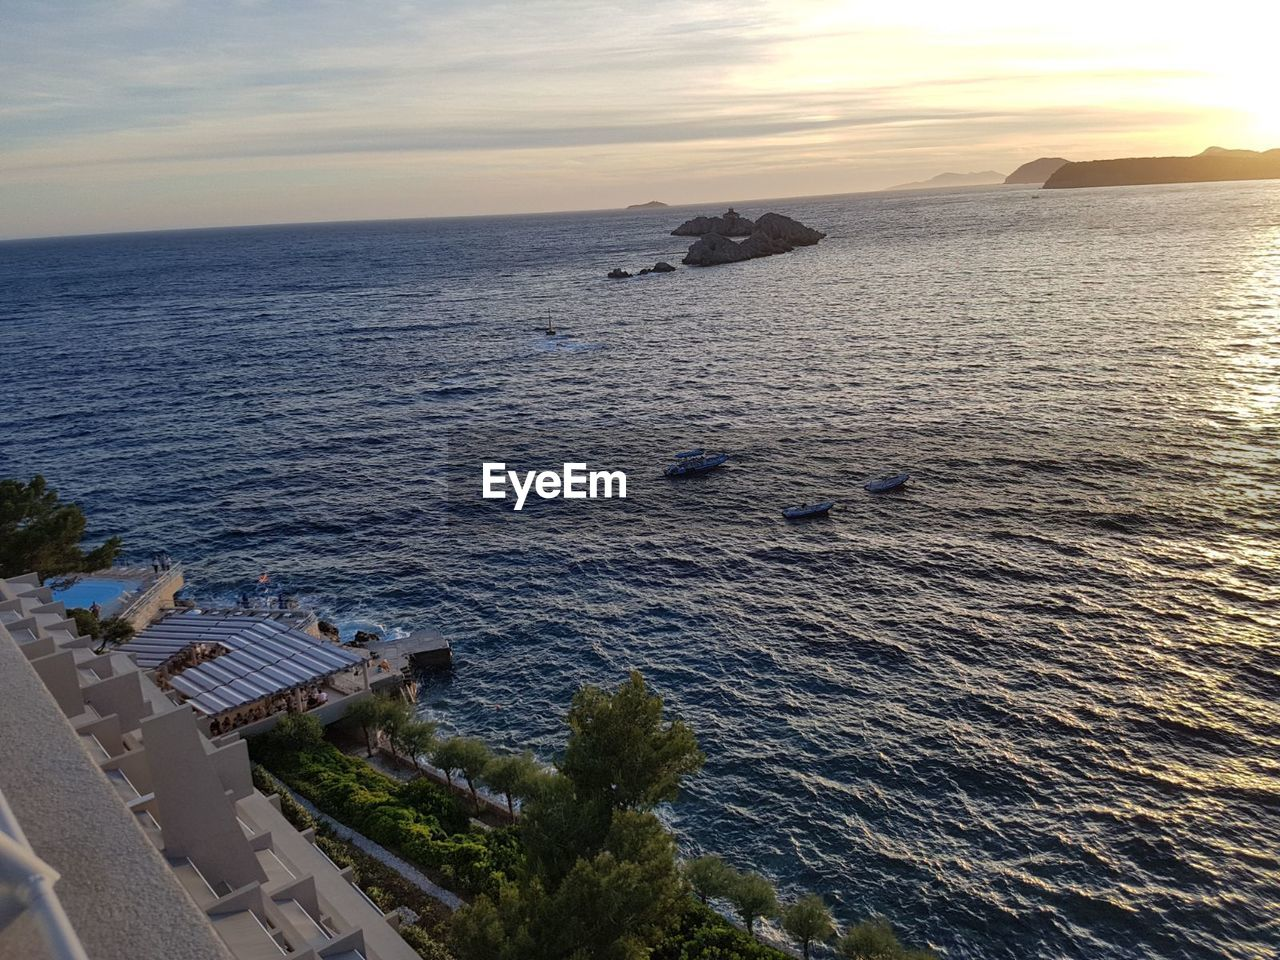 sea, water, nature, sunset, beauty in nature, high angle view, horizon over water, scenics, tranquility, sky, outdoors, no people, architecture, day